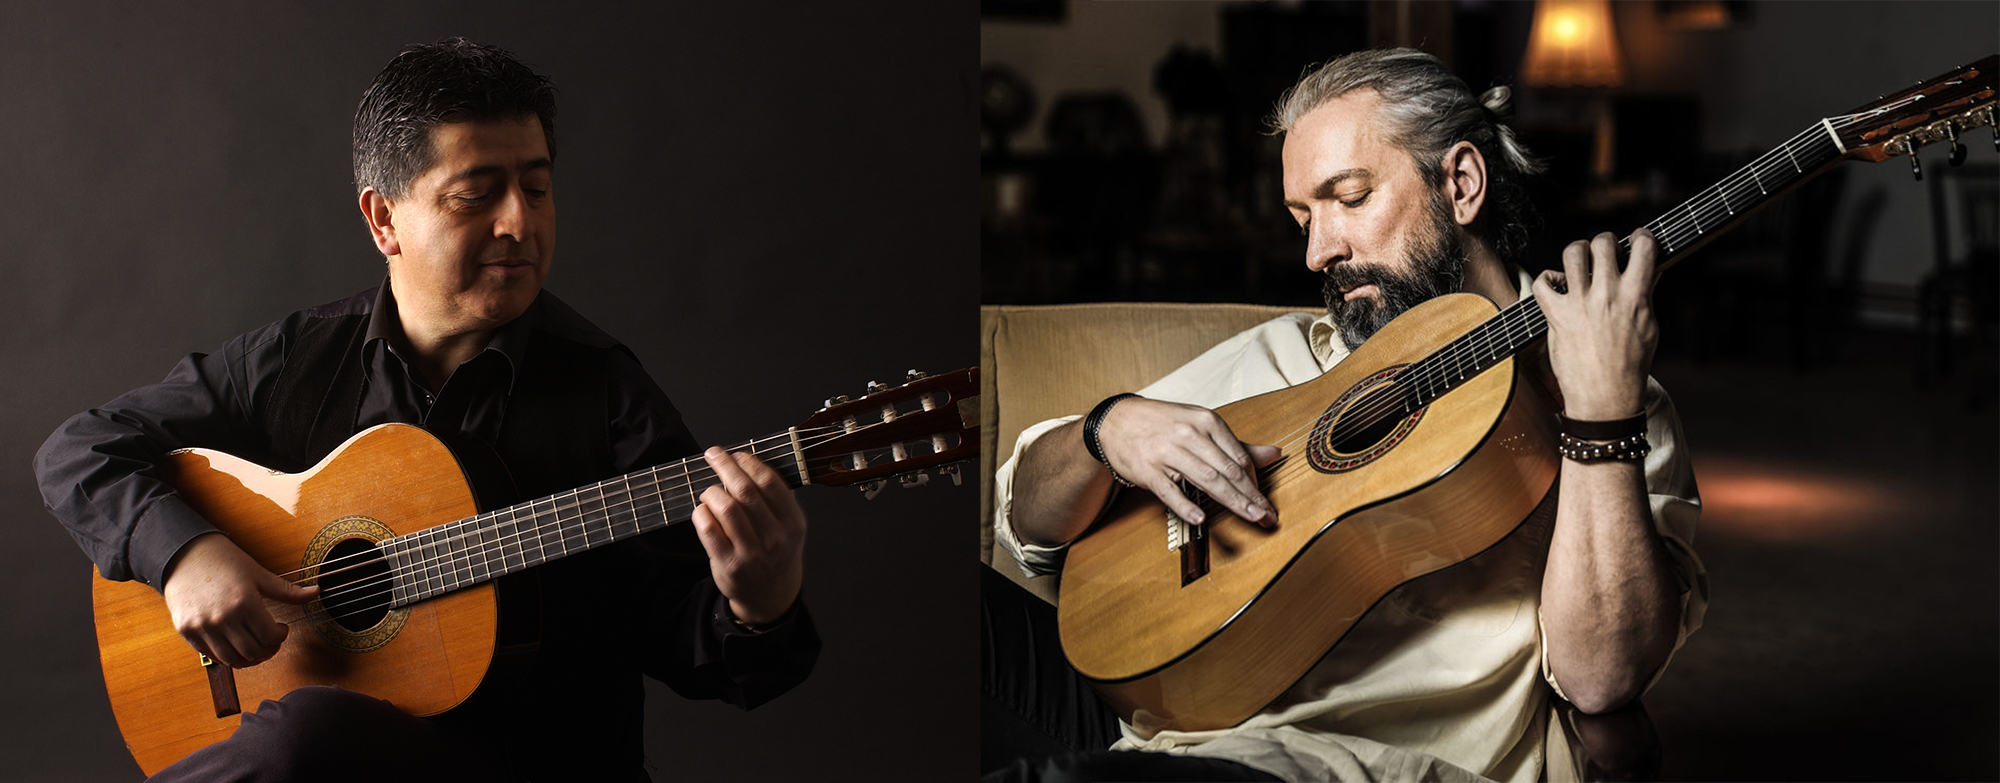 08.06 / 20:25Uhr Double Feature: Max Herzog  & Manuel Torres